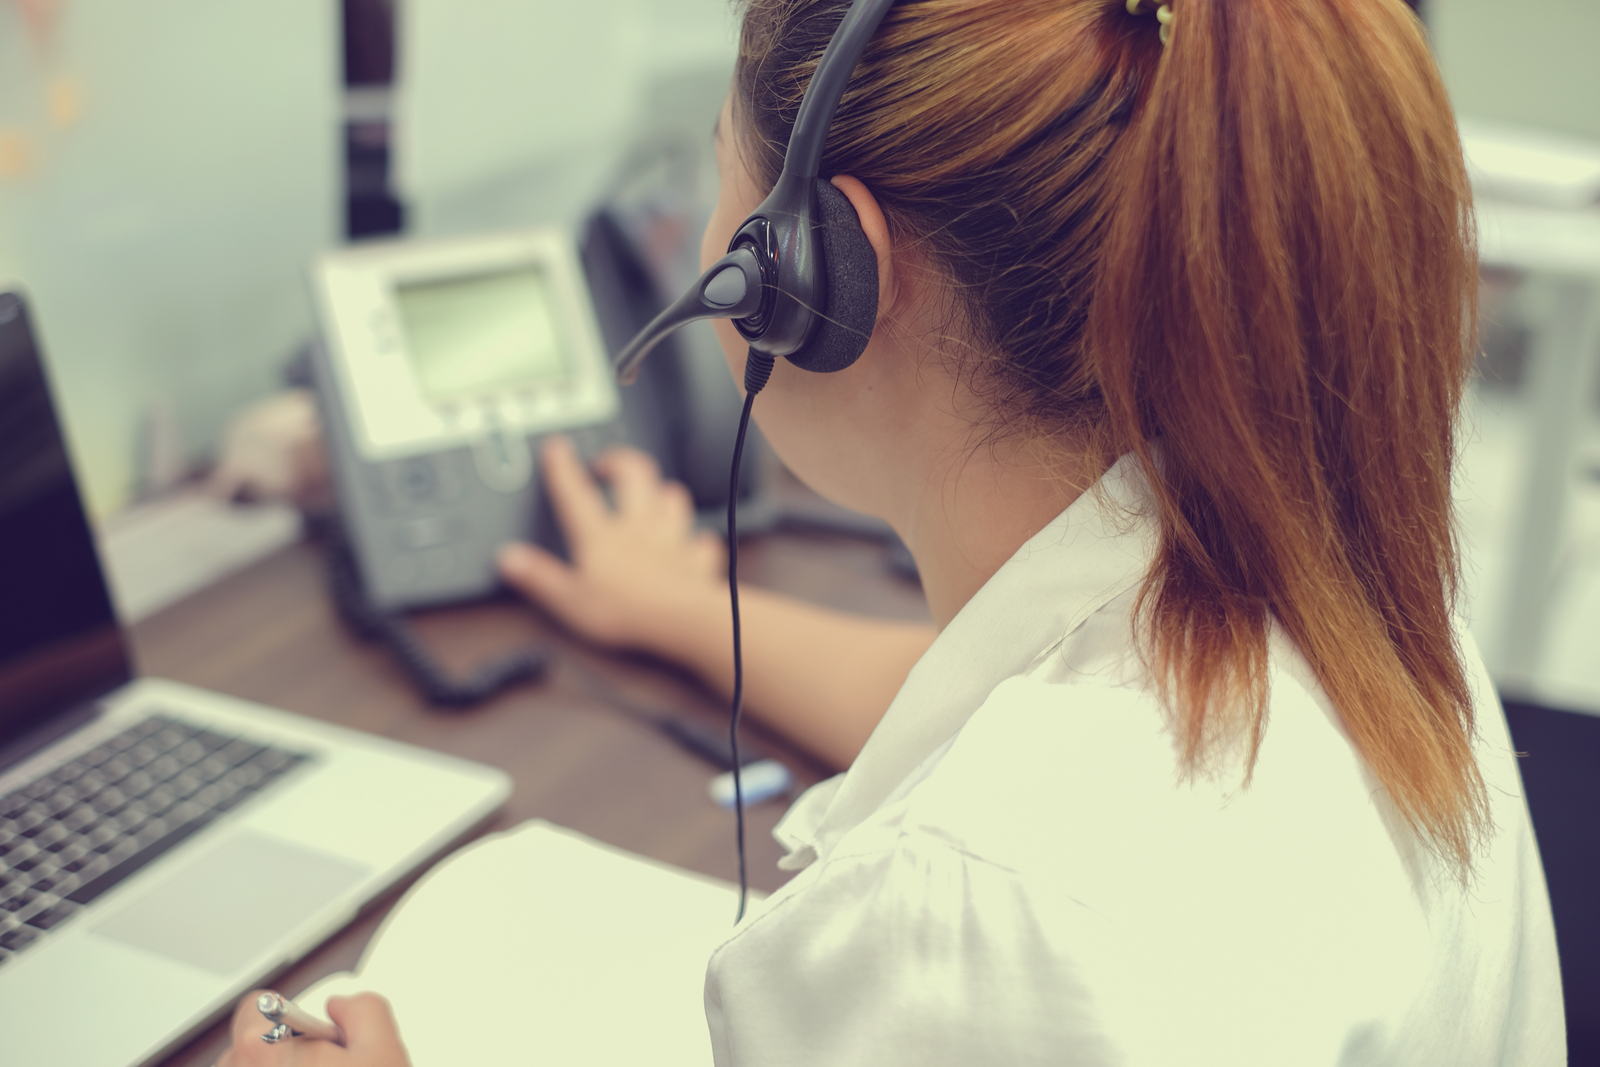 Call Center Agent | What is Ecommerce? A Beginner's Guide To The Basics